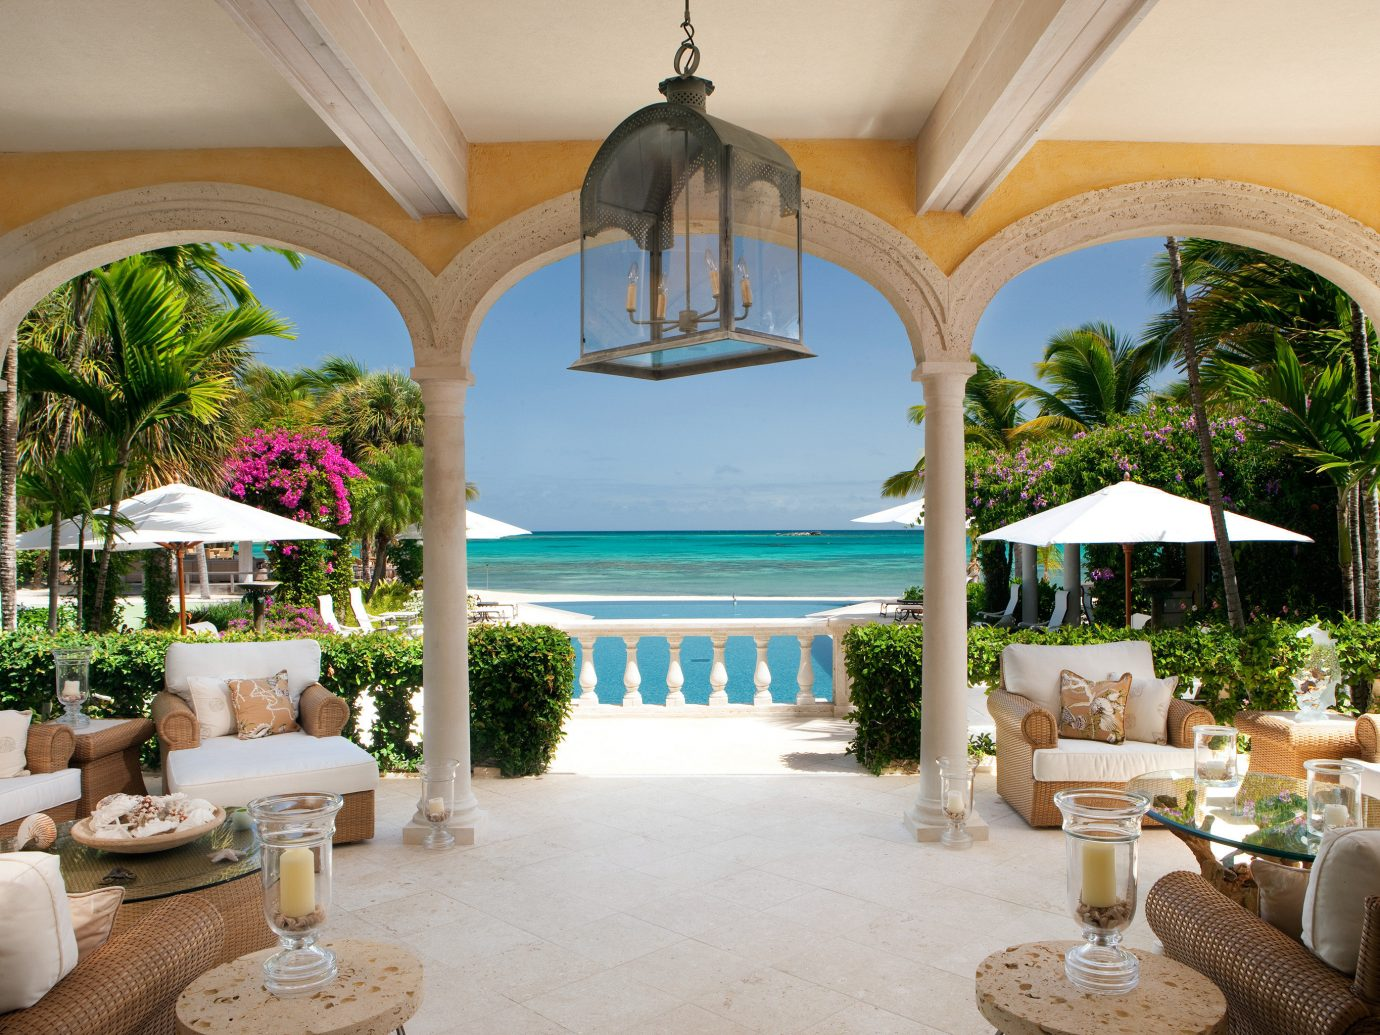 All-inclusive All-Inclusive Resorts Beach Beachfront Courtyard Hotels Island Lounge Luxury Patio Romantic Hotels Scenic views Suite Waterfront estate property Resort Villa room mansion vacation home hacienda interior design palace real estate caribbean furniture living room restaurant area decorated colonnade